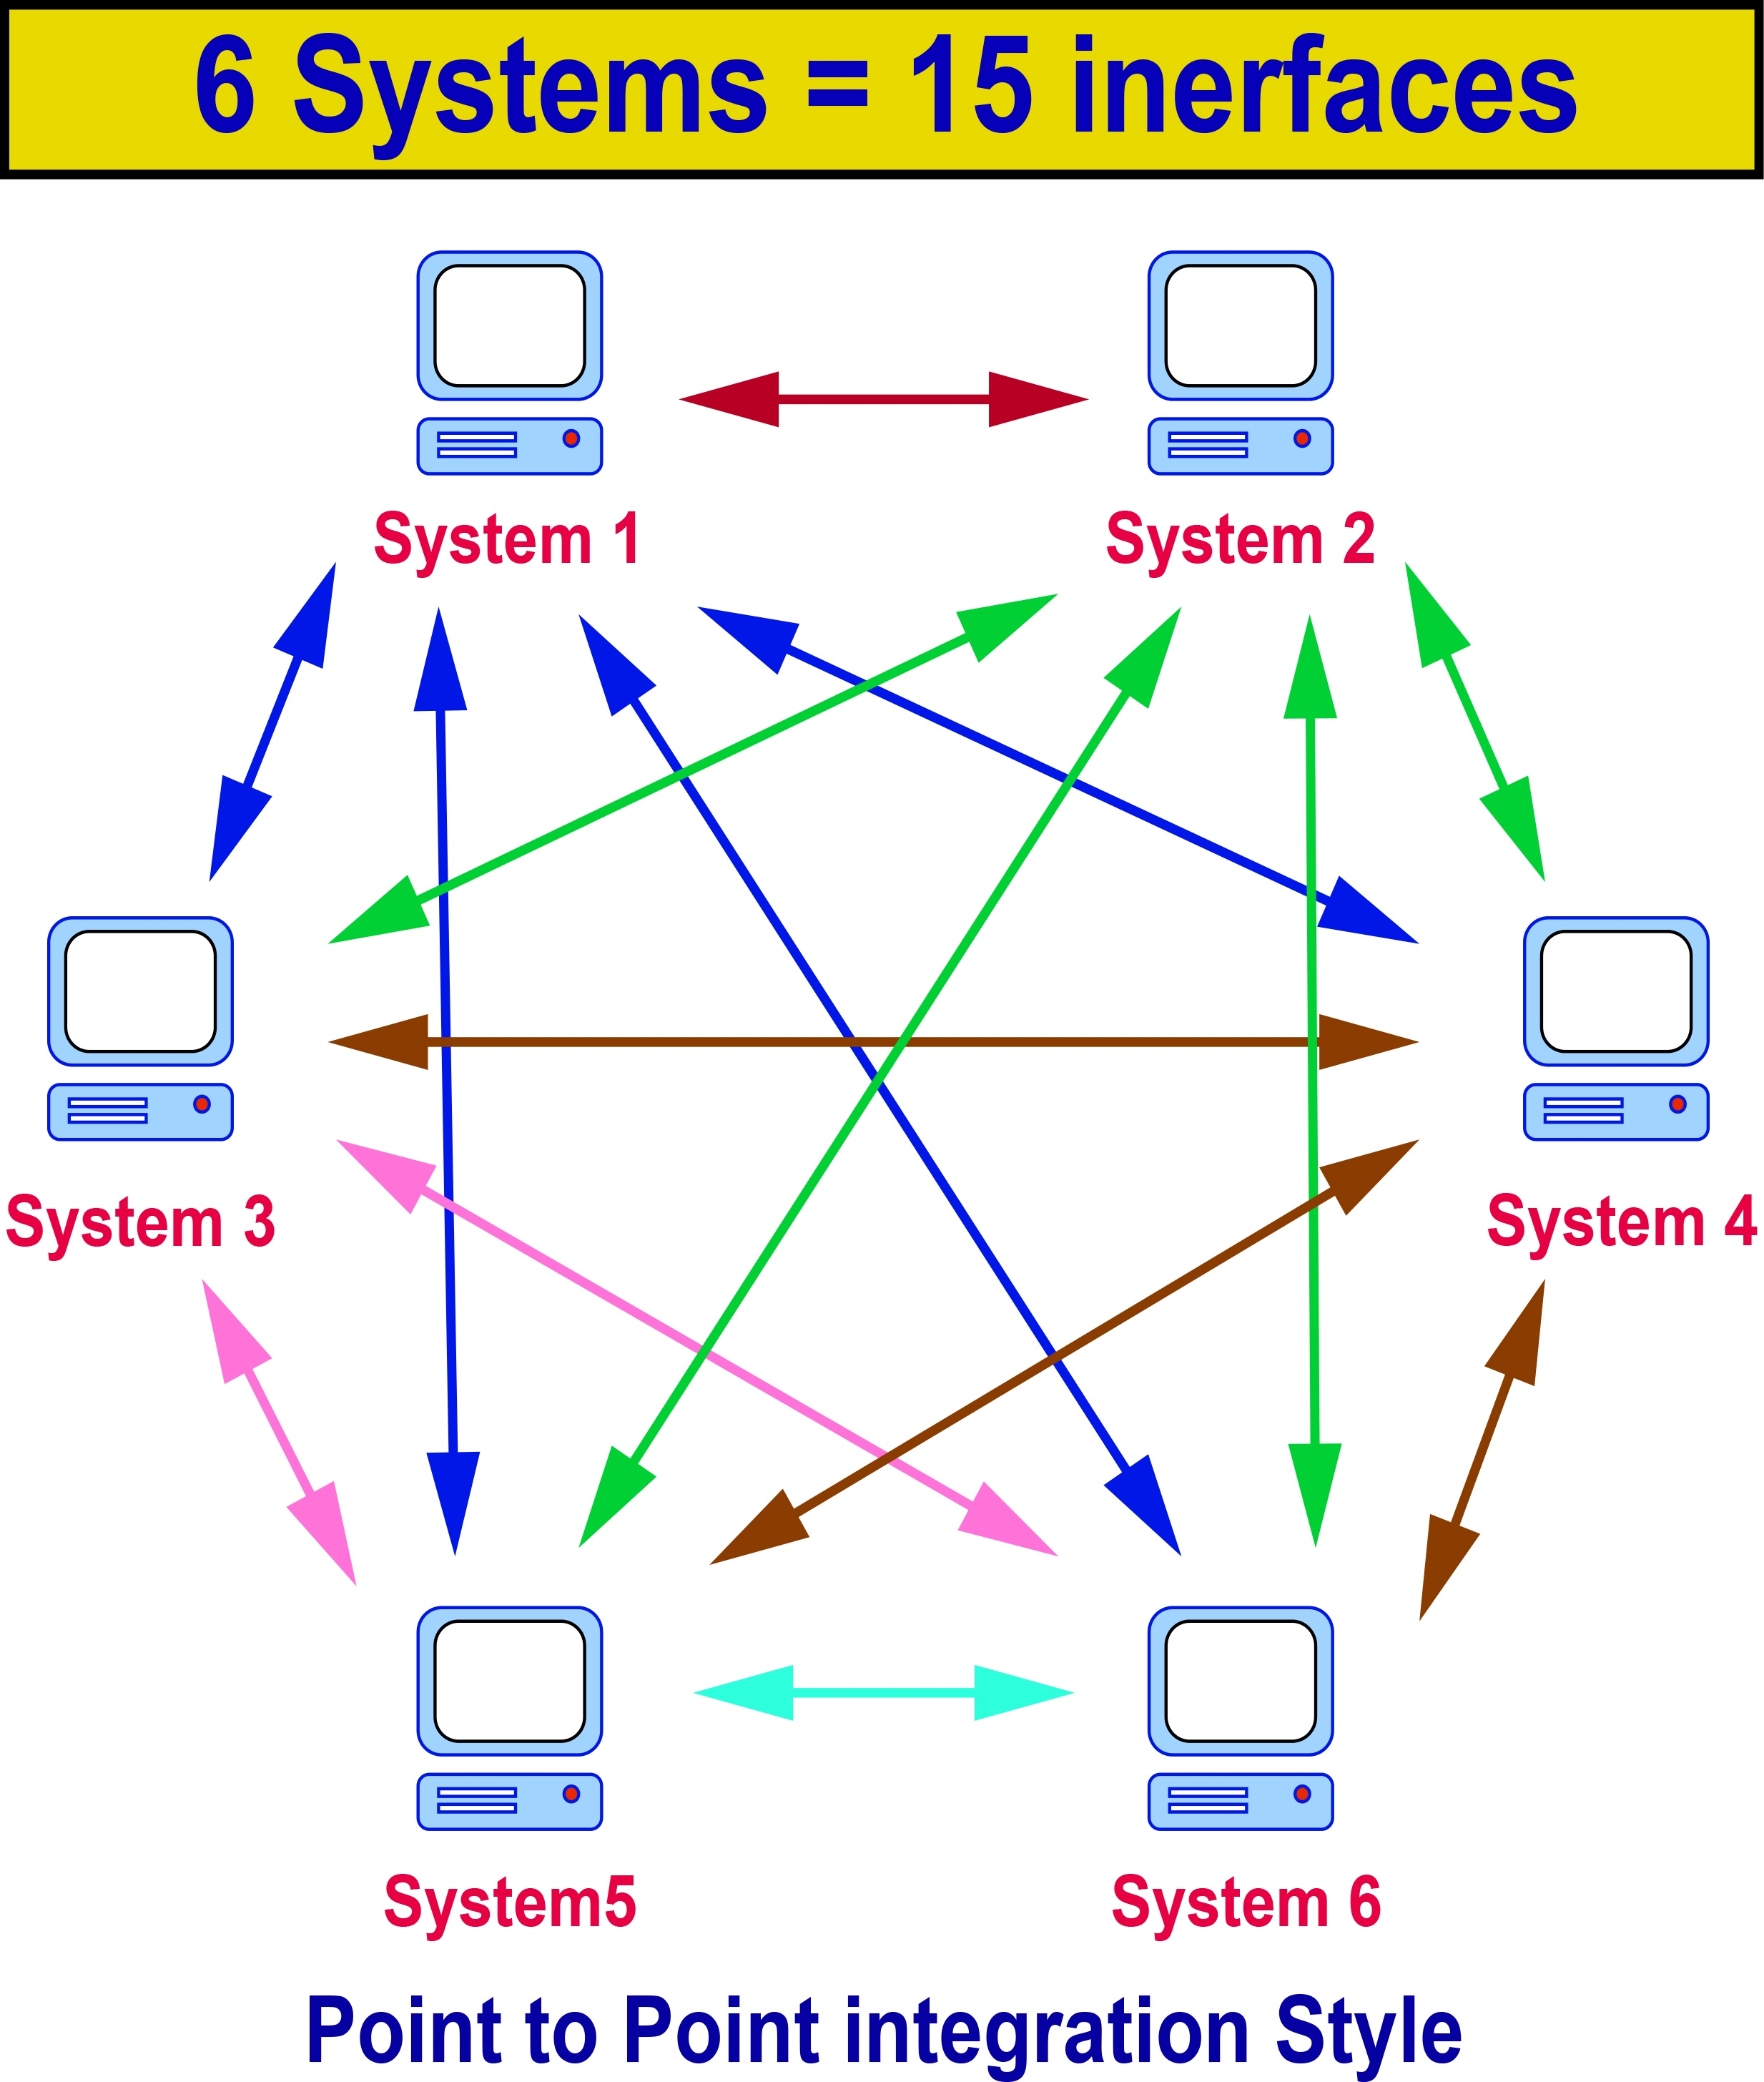 Fig 2, Point to Point Integration